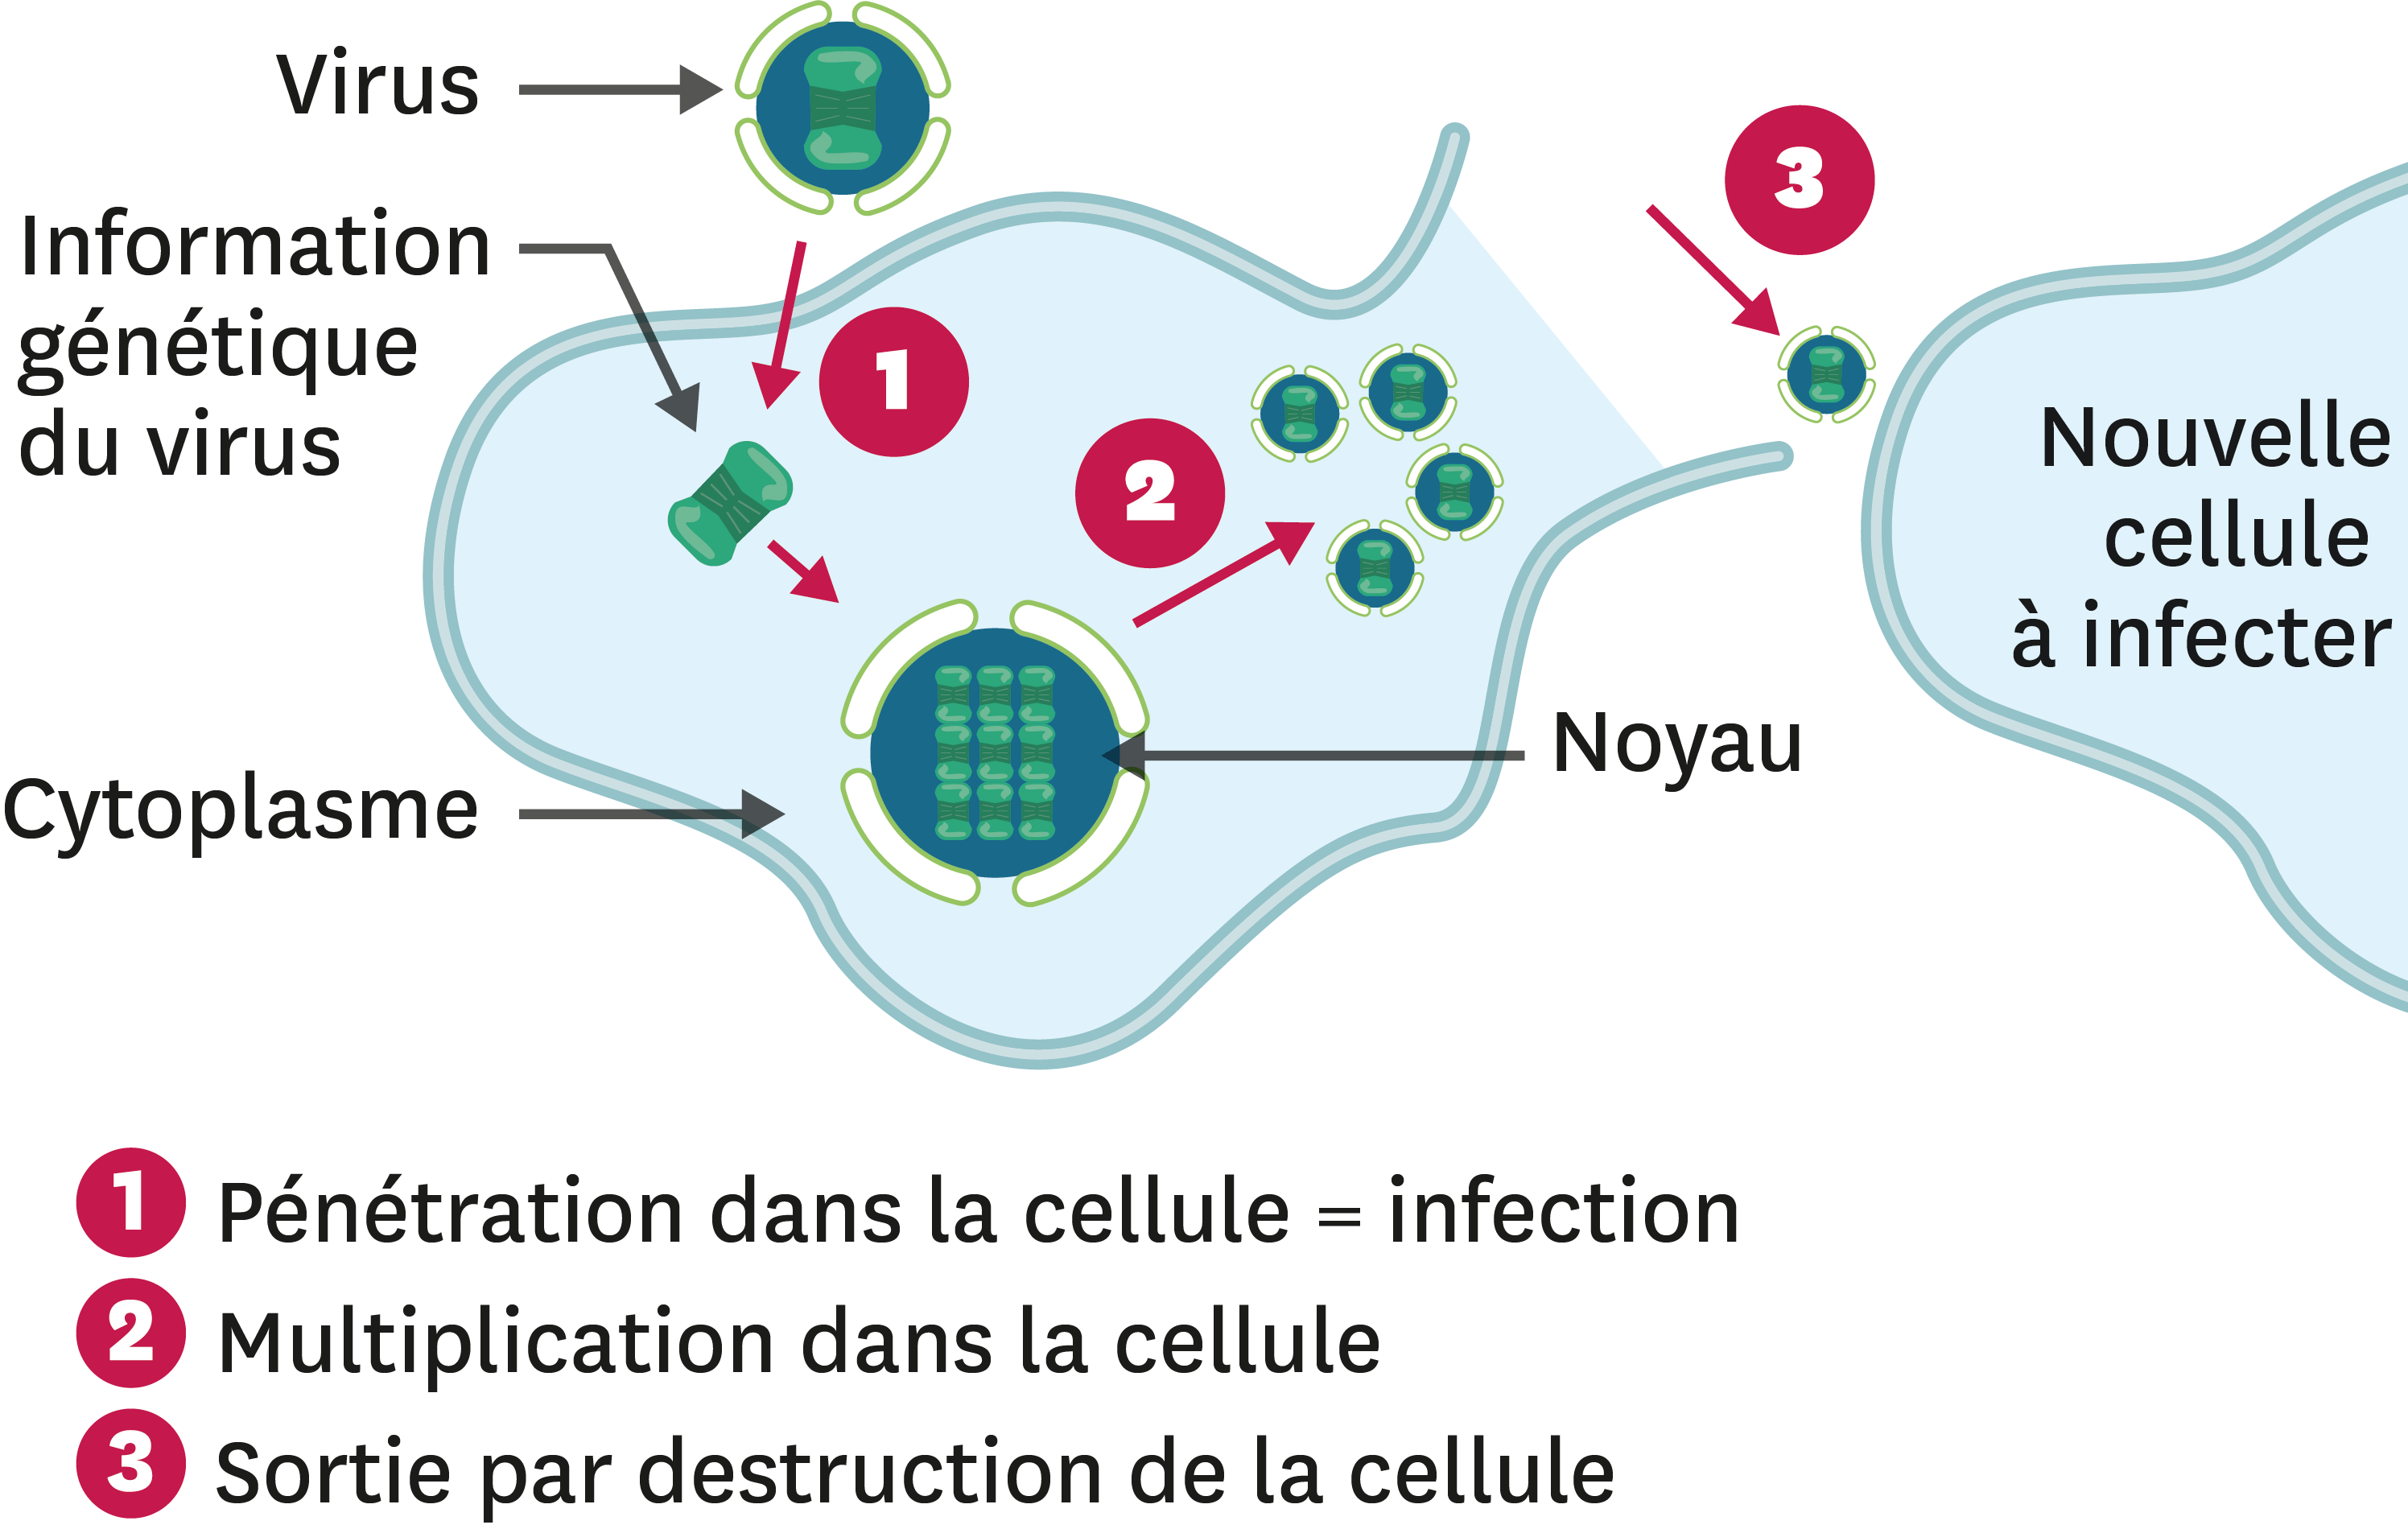 De la contamination à l'infection dans le cas d'un virus.